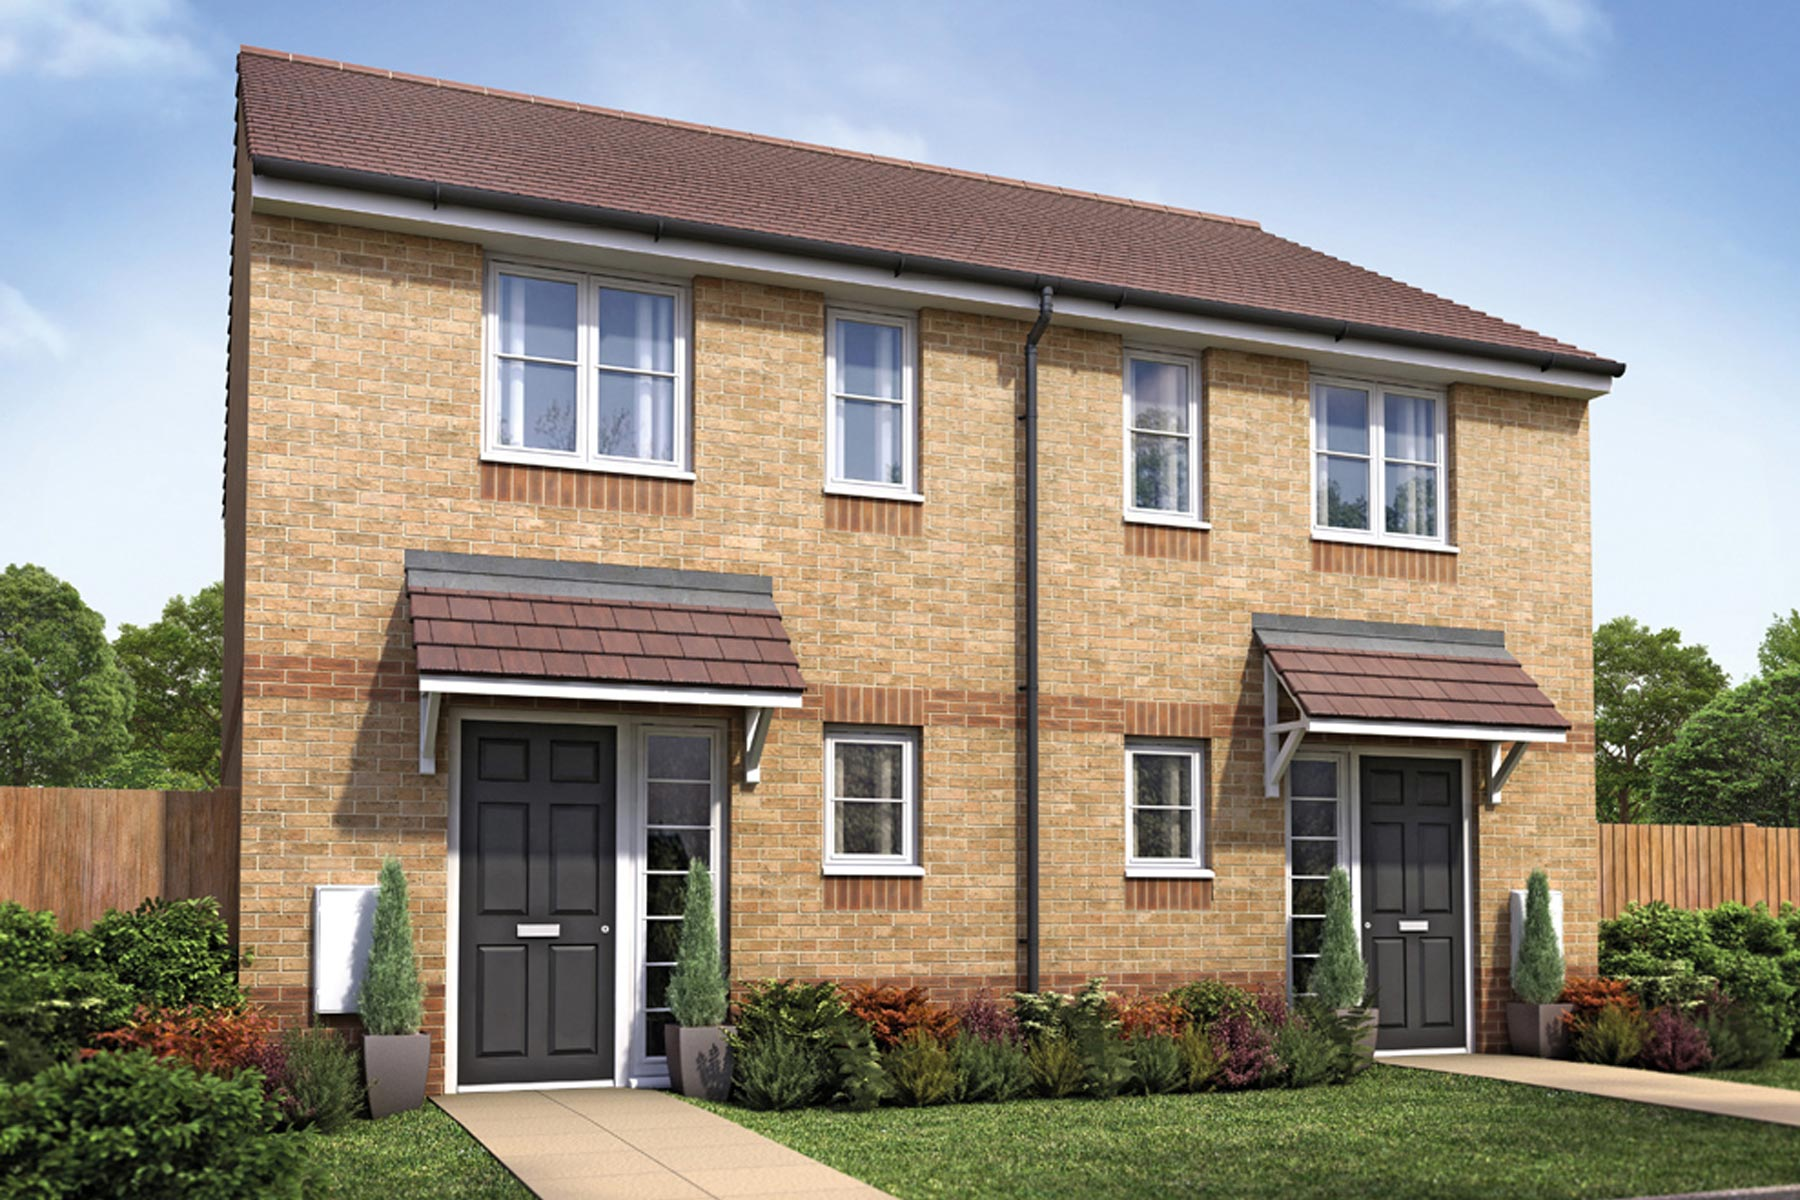 Taylor-WImpey-Exterior-Belford-PA22-2-bed